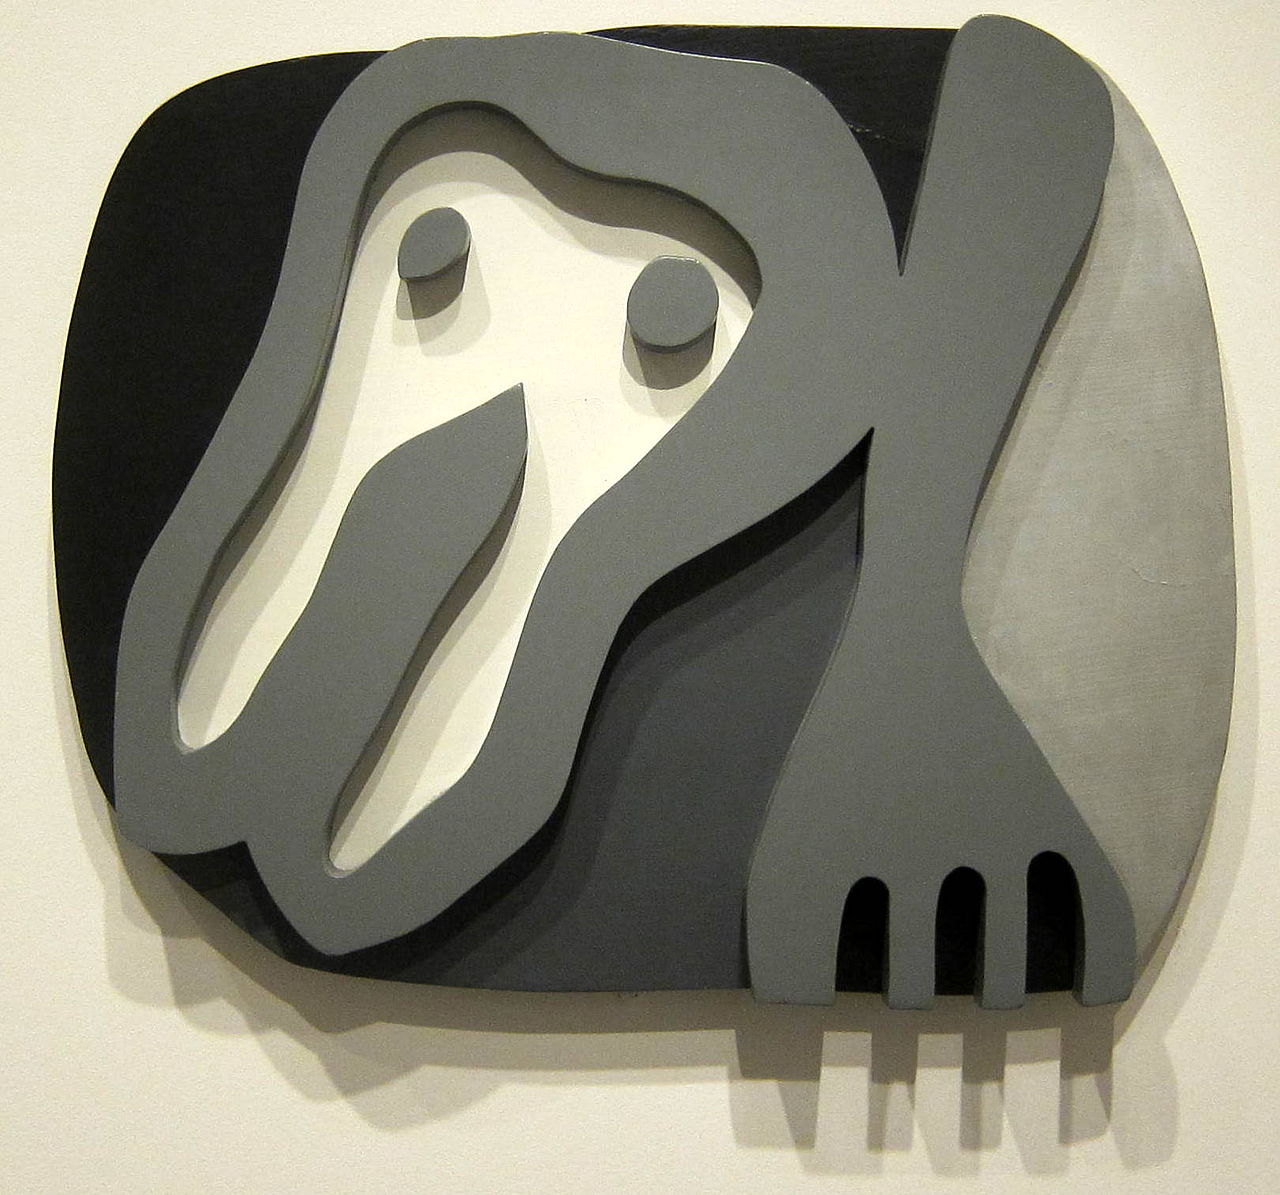 Jean (Hans) Arp,  Shirt Front and Fork  (painted wood), 1922, National Gallery of Art, Washington, D.C.